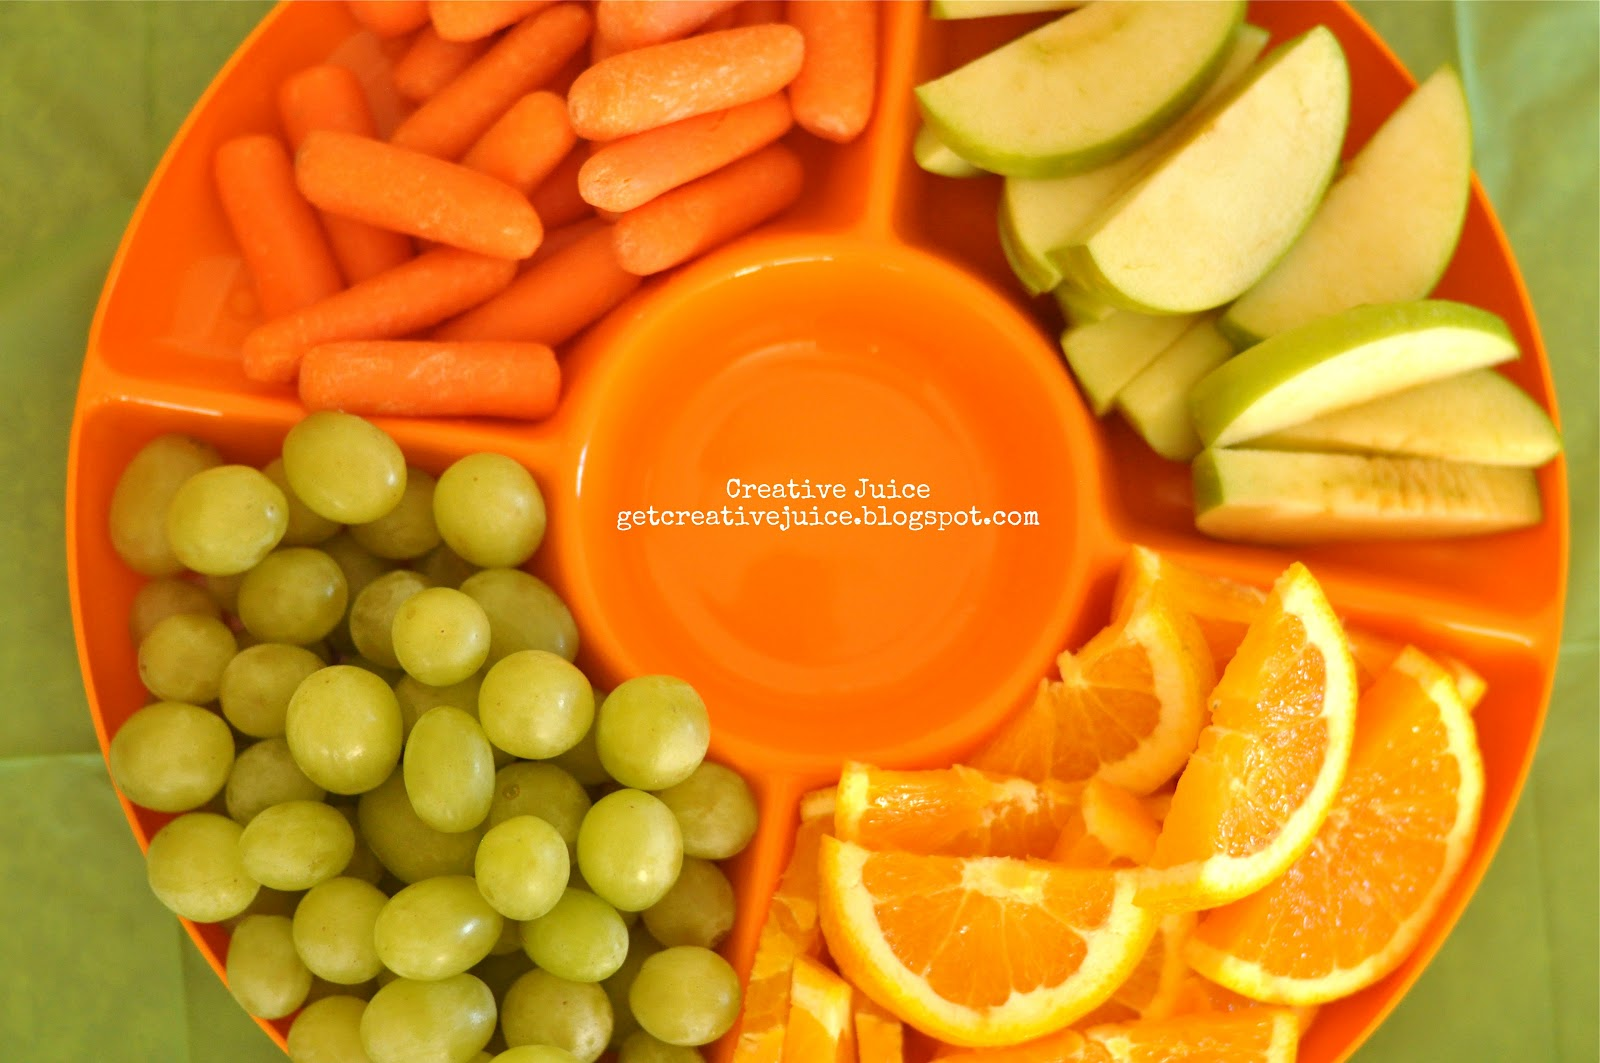 science party food and dessert ideas creative juice